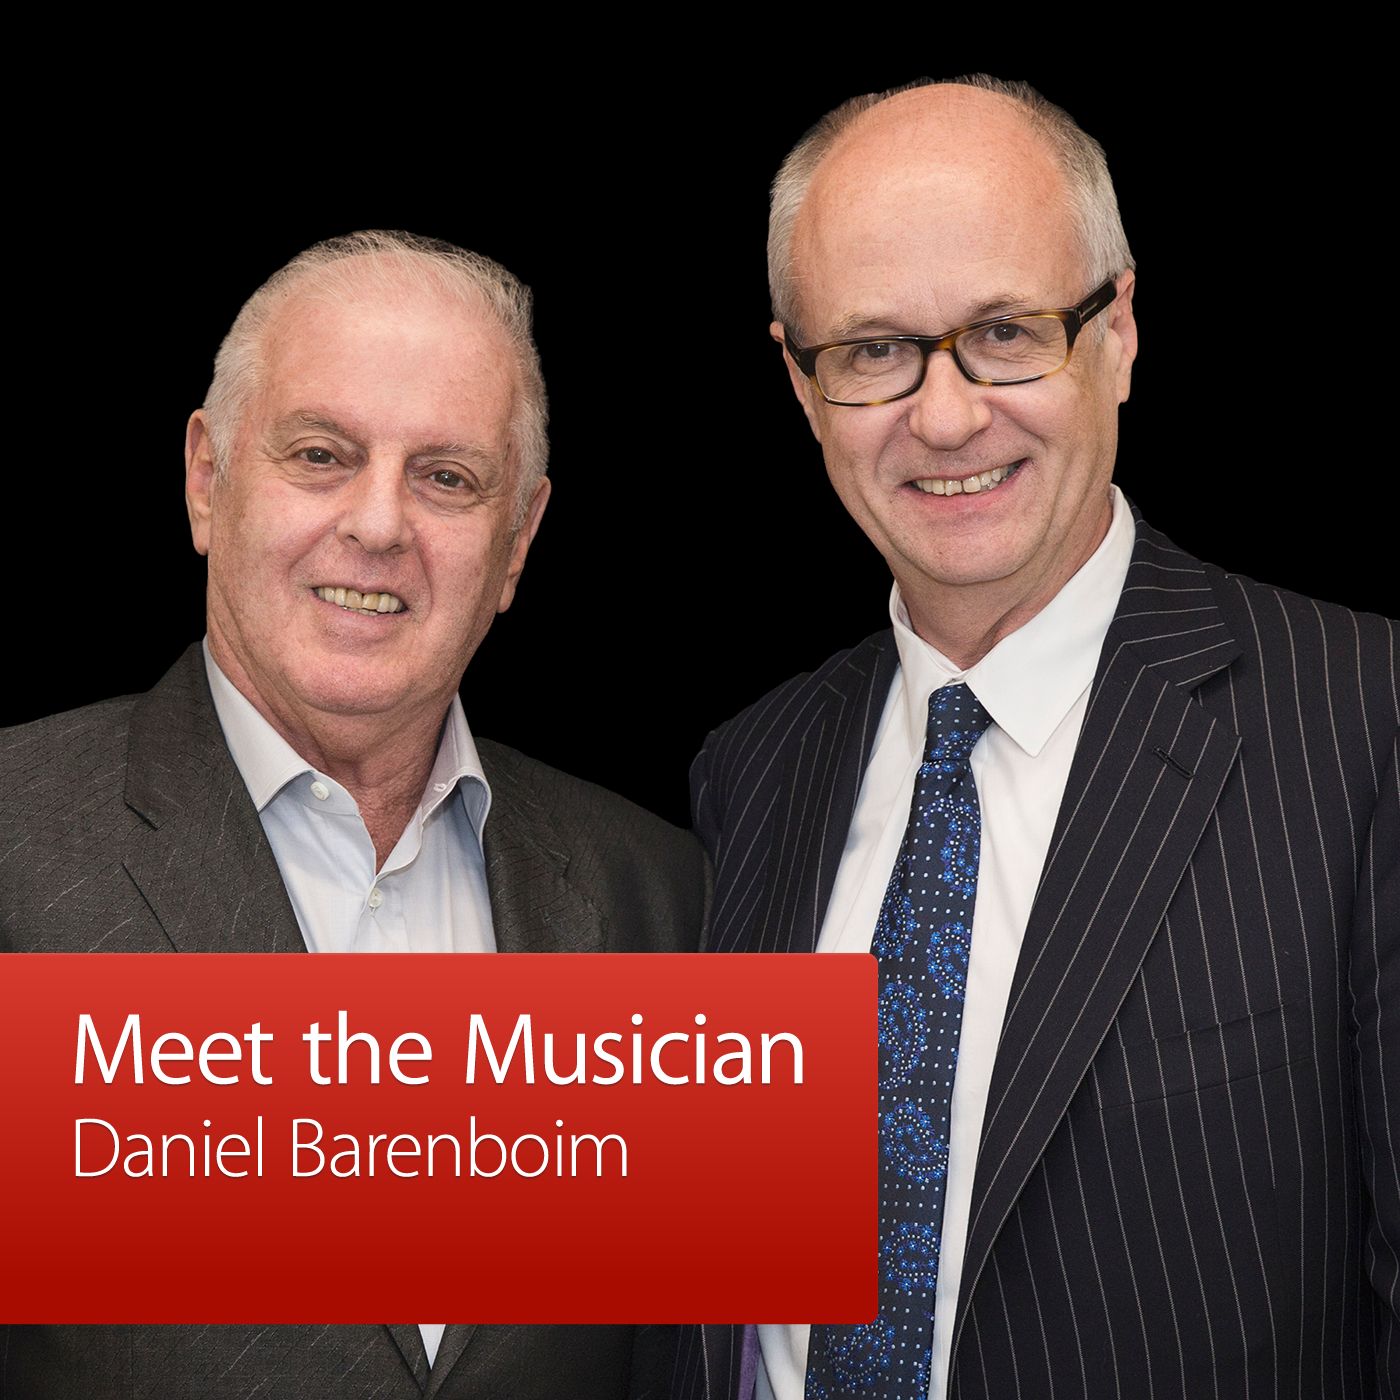 Daniel Barenboim: Meet the Musician